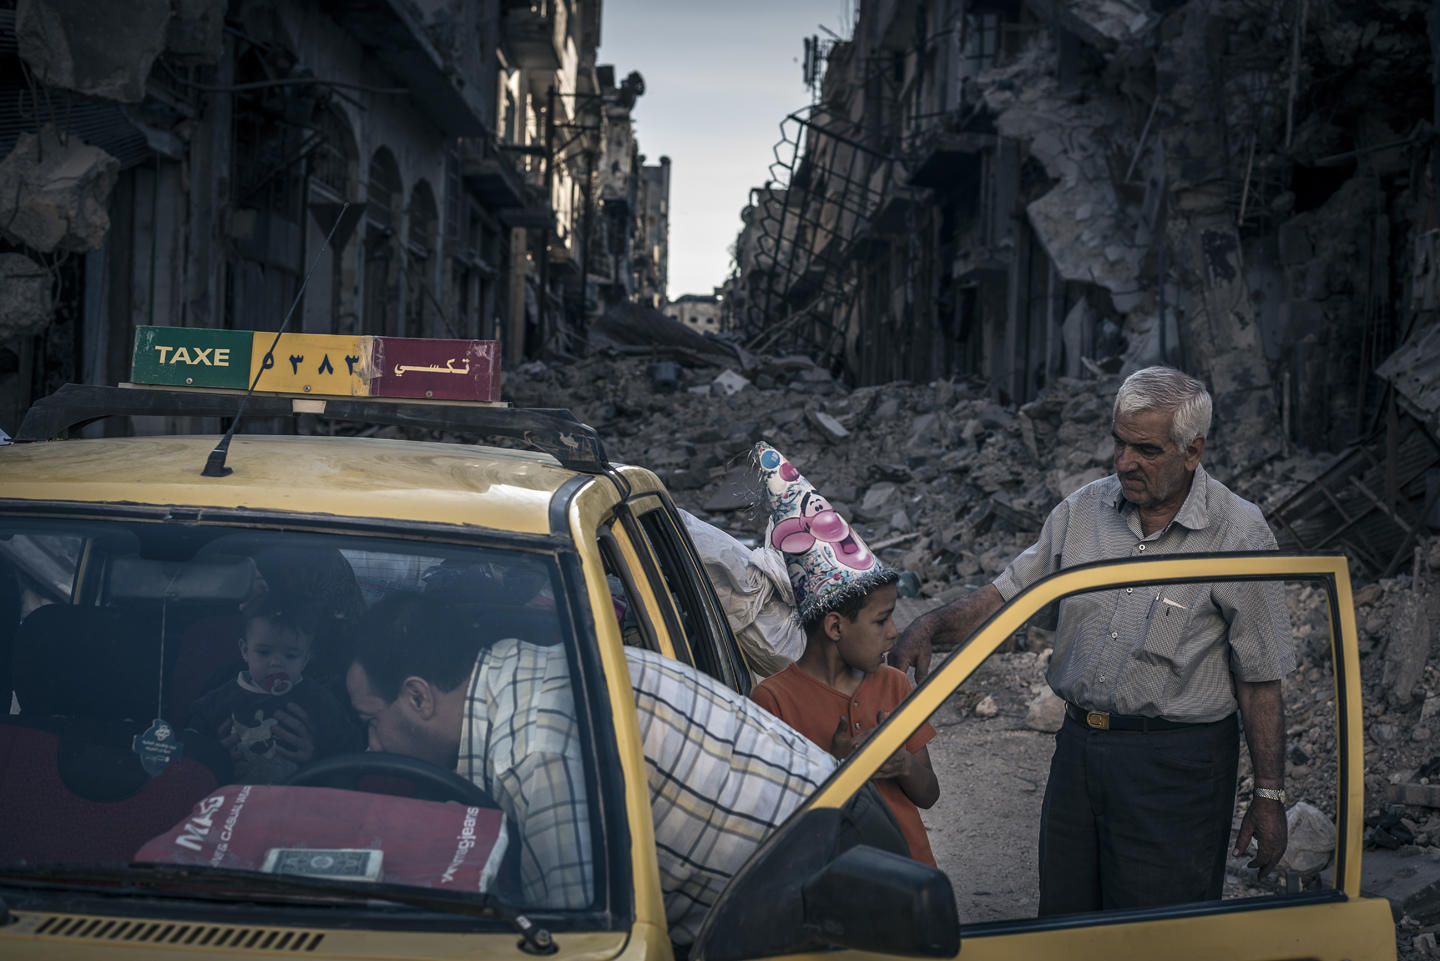 Damascus Syria | Photo by Sergey Ponomarev | Photojournalism Tips